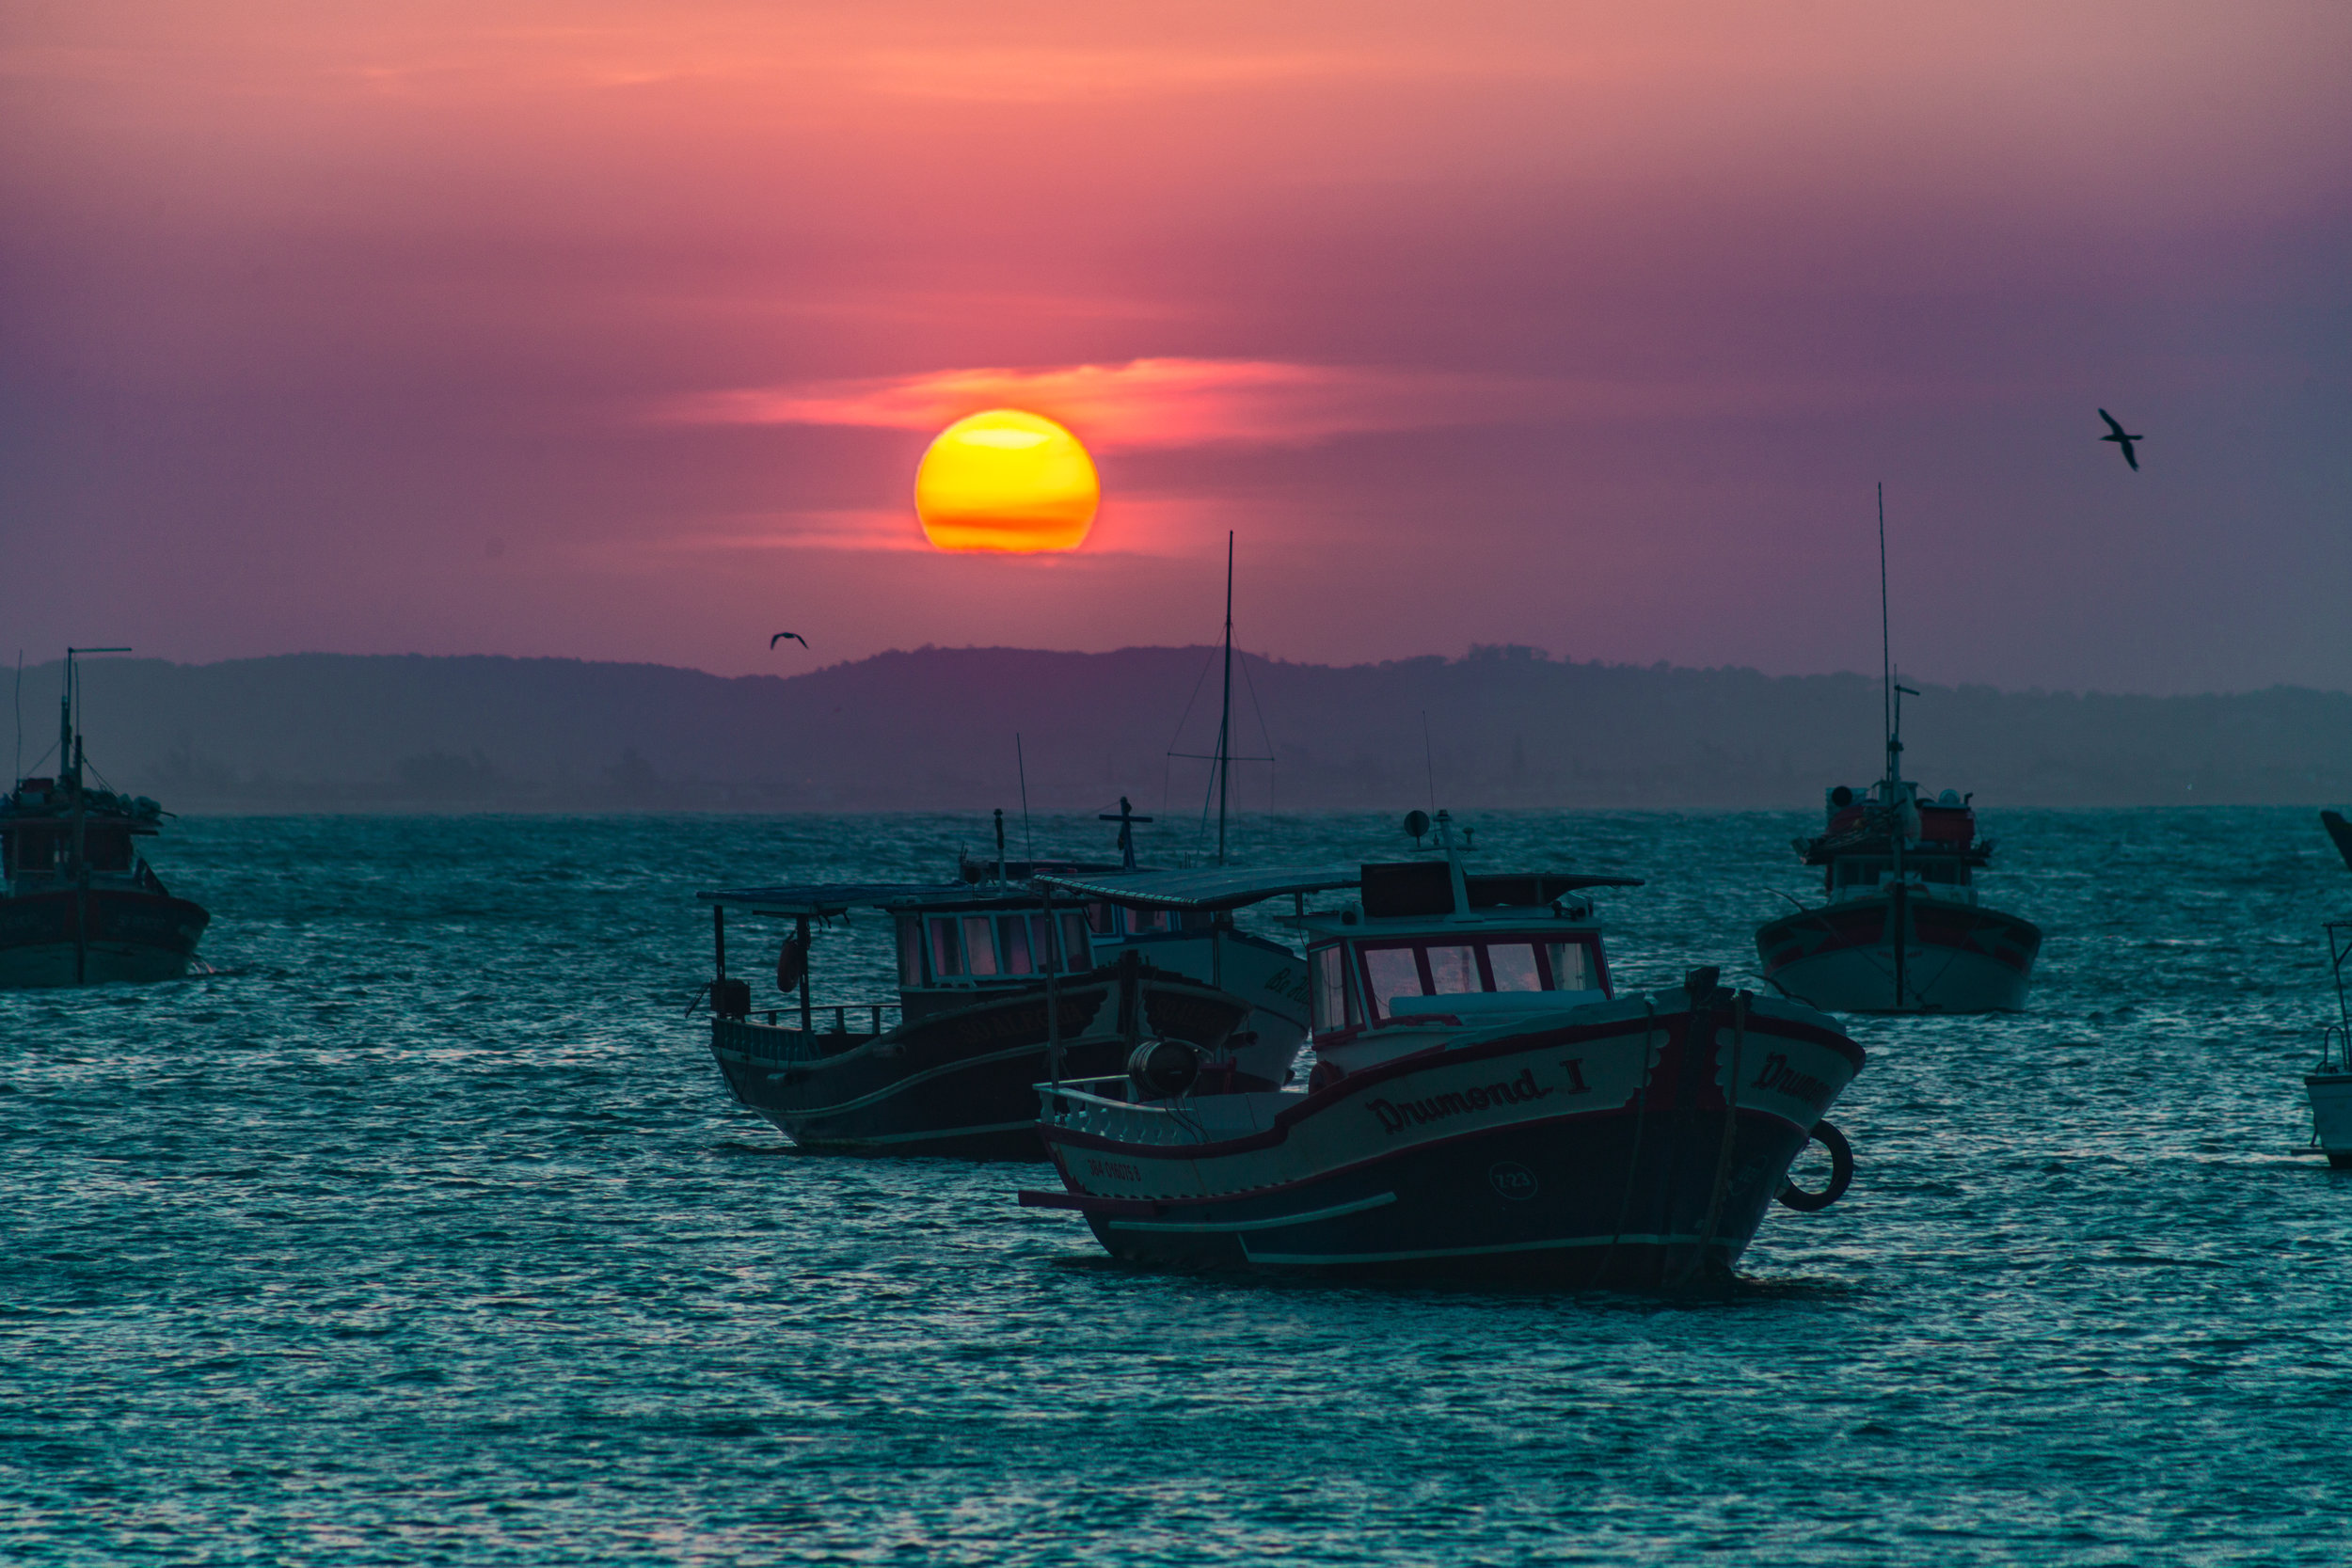 Fishing boats at sunset in Bahia, Brazil